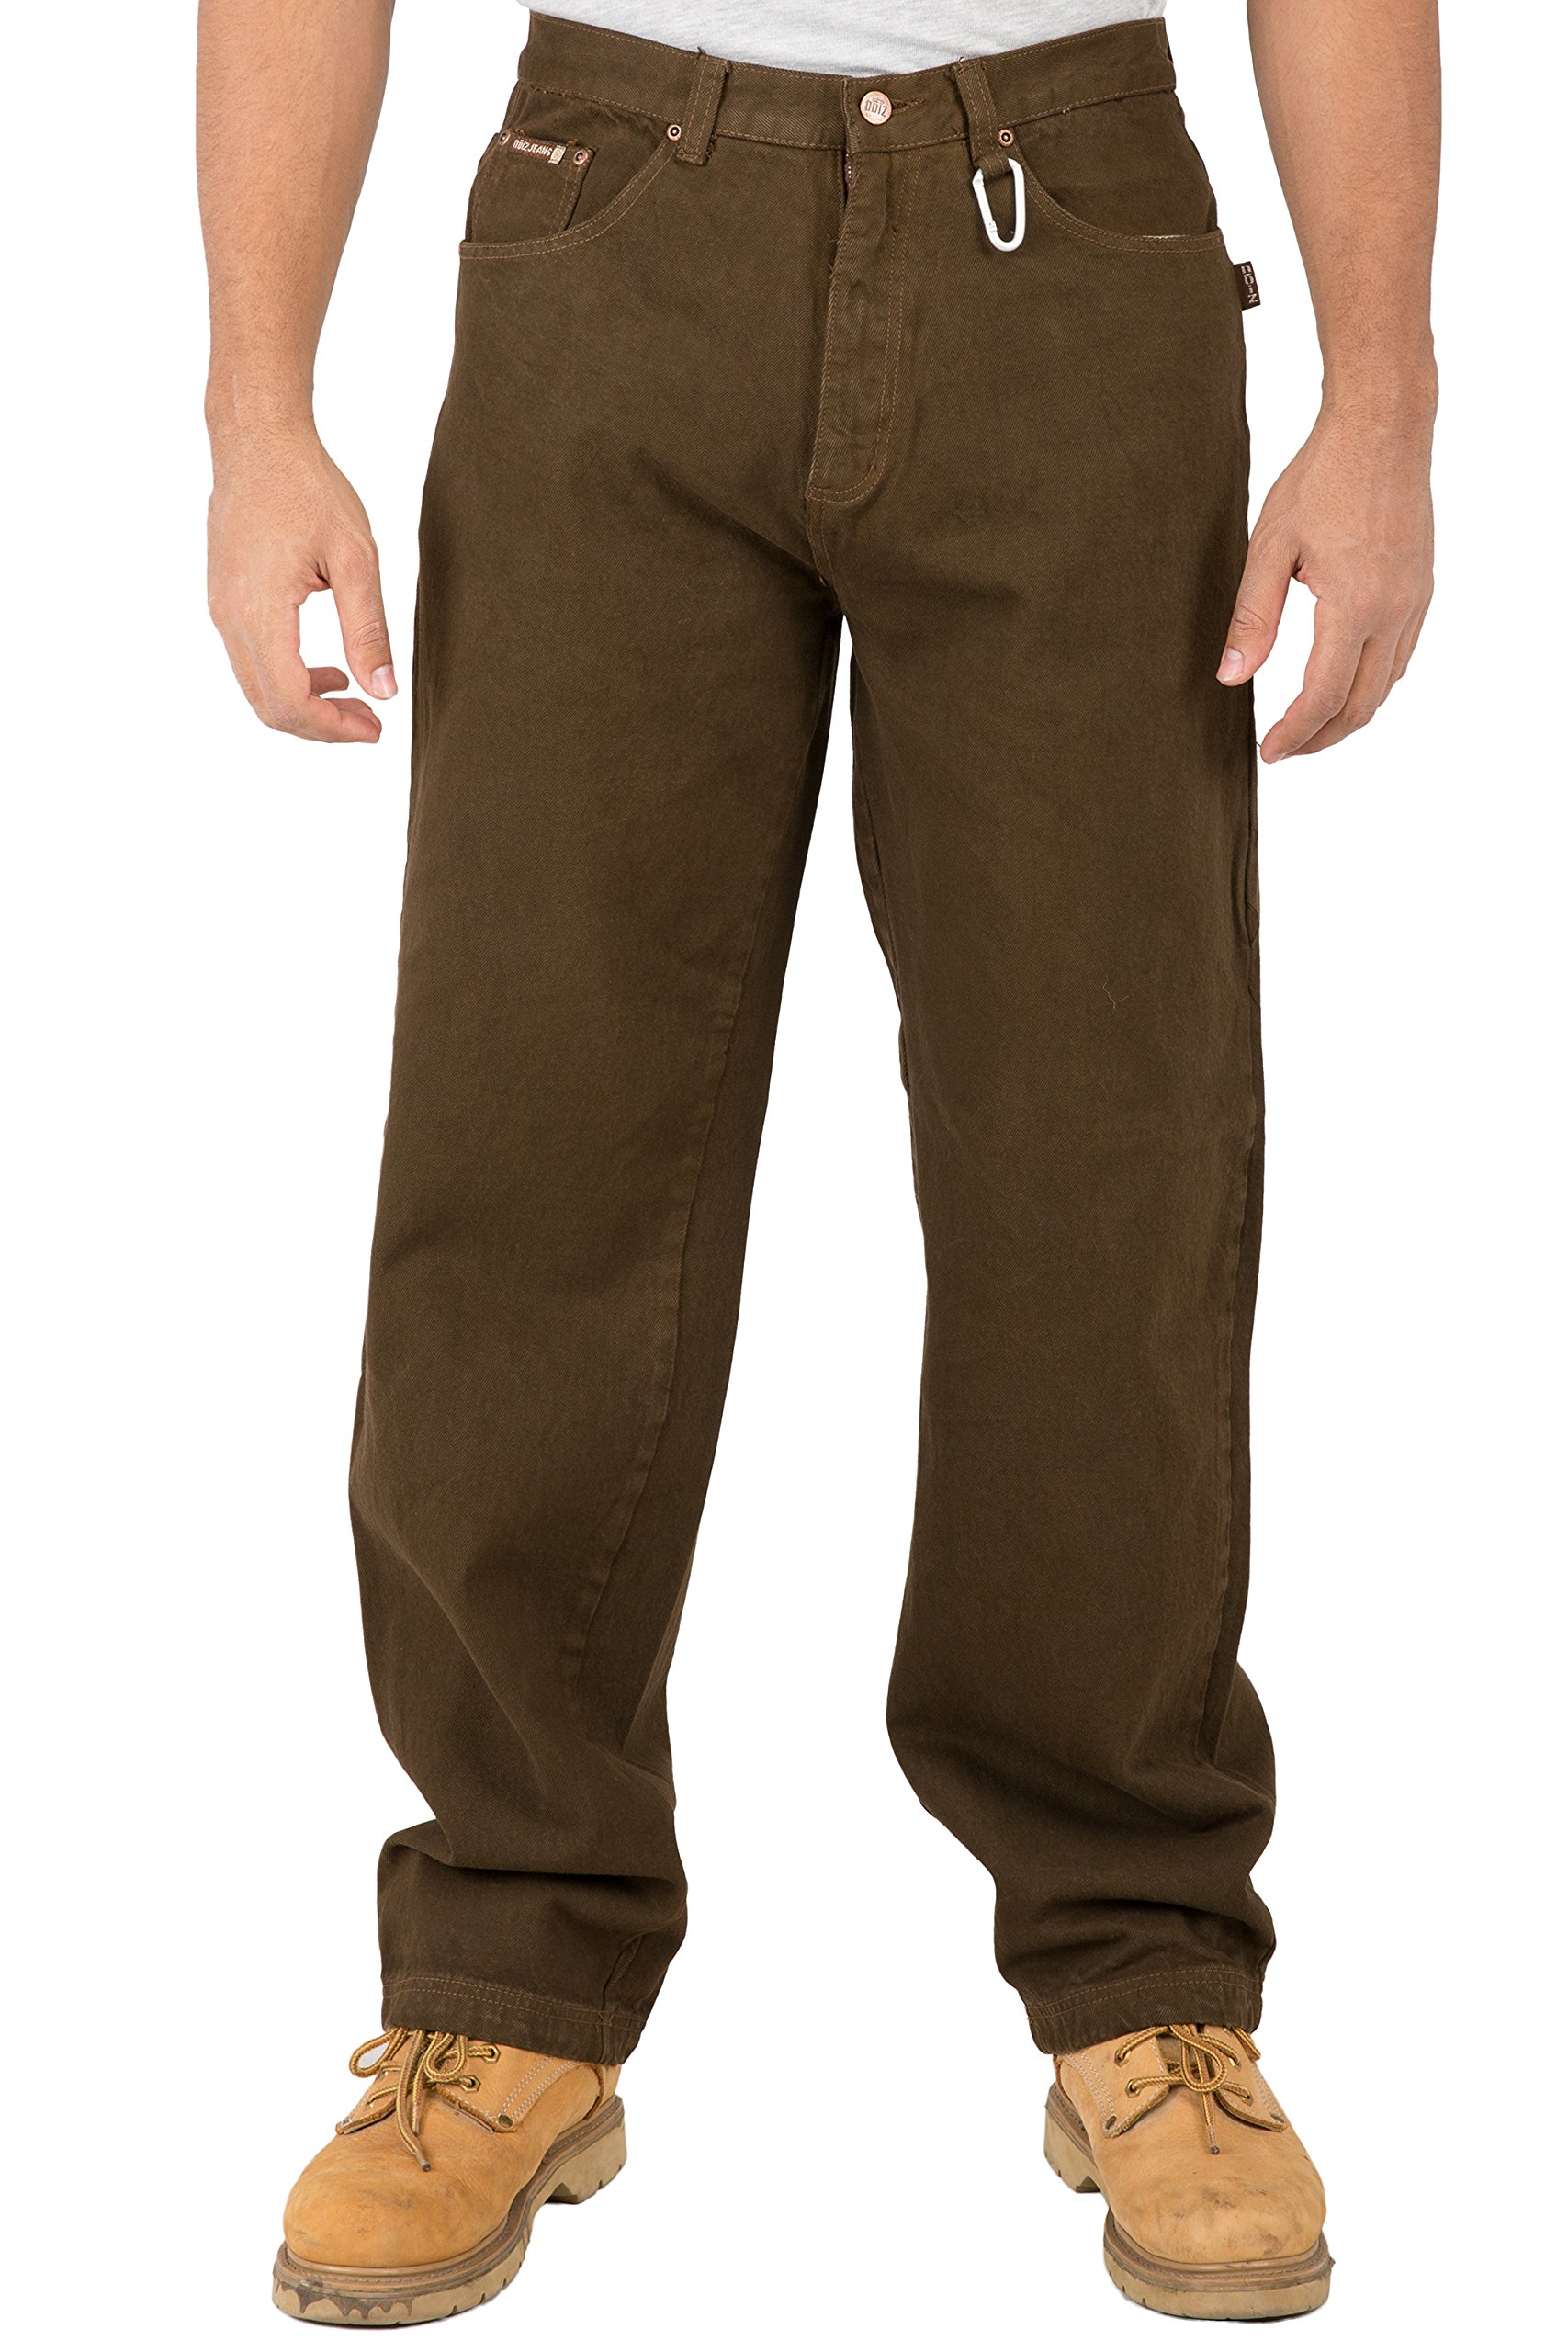 e659cb59 Get Quotations · Vibes Mens Relax Straight Leg 5 Pocket Brown Color Denim  Jeans Carabiner Clips On Belt Loop